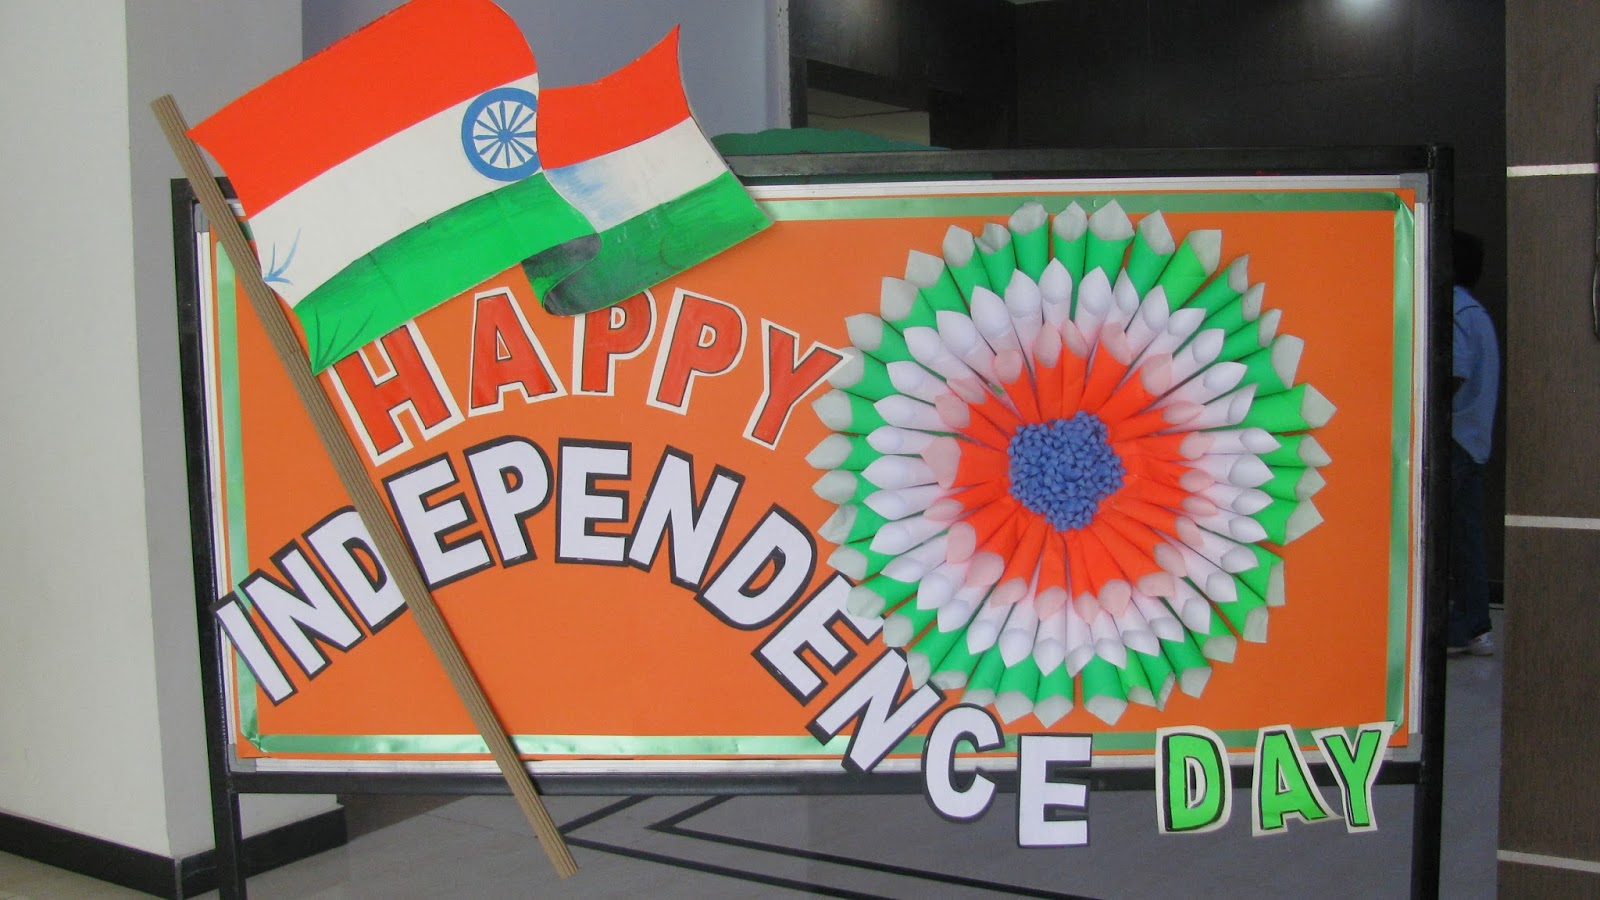 India independence day 2017 decoration ideas rangoli for 26 january decoration